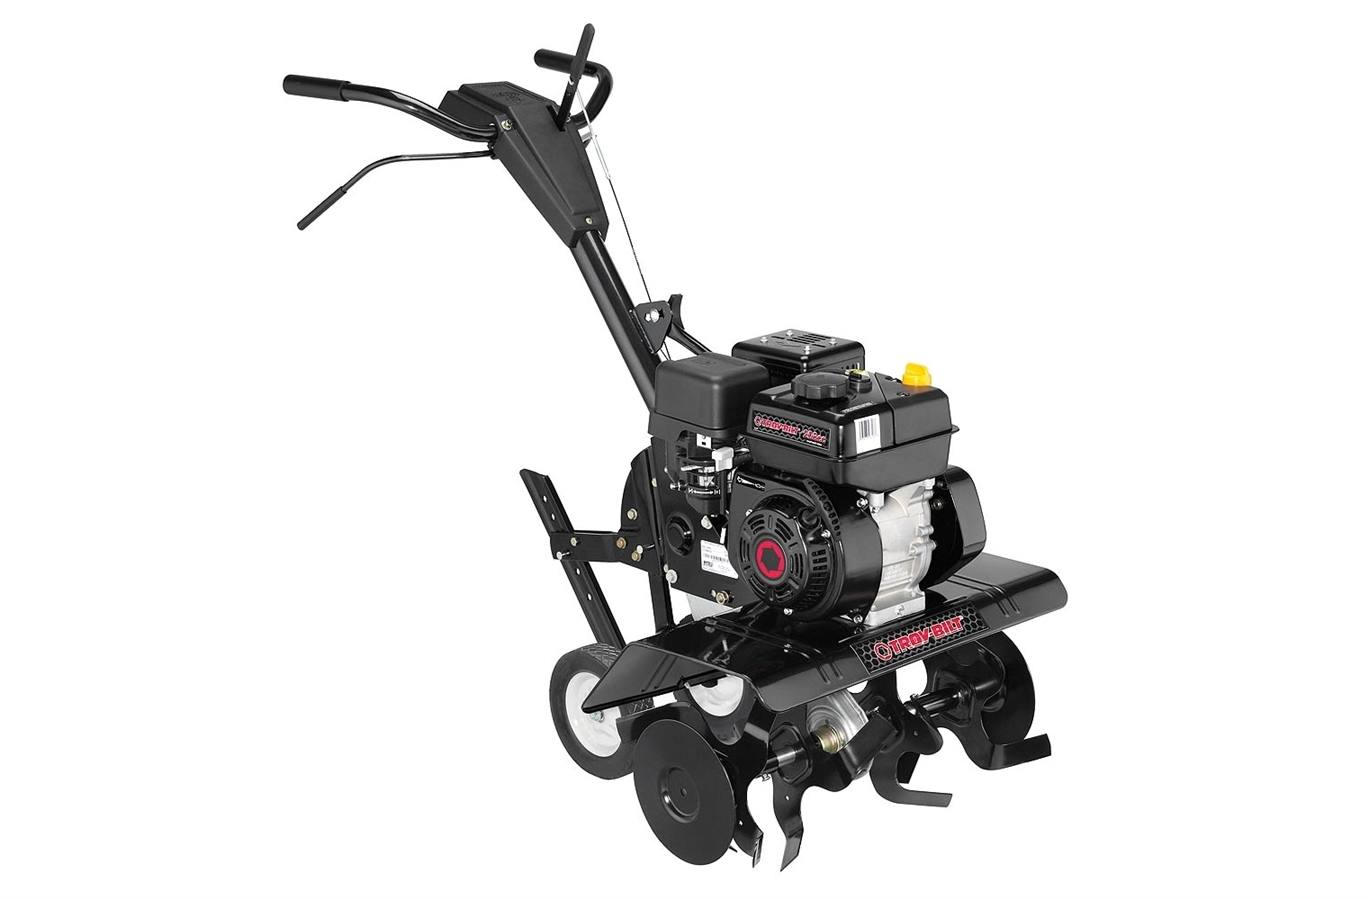 Splendent Mo Troy Bilt Super Bronco Tiller 21a 634a766 Troy Bilt Super Bronco Tiller Belt Diagram Sale 2017 Colt Ft Xp Garden Tiller 2017 Colt Ft Xp Garden Tiller houzz-03 Troy Bilt Super Bronco Tiller